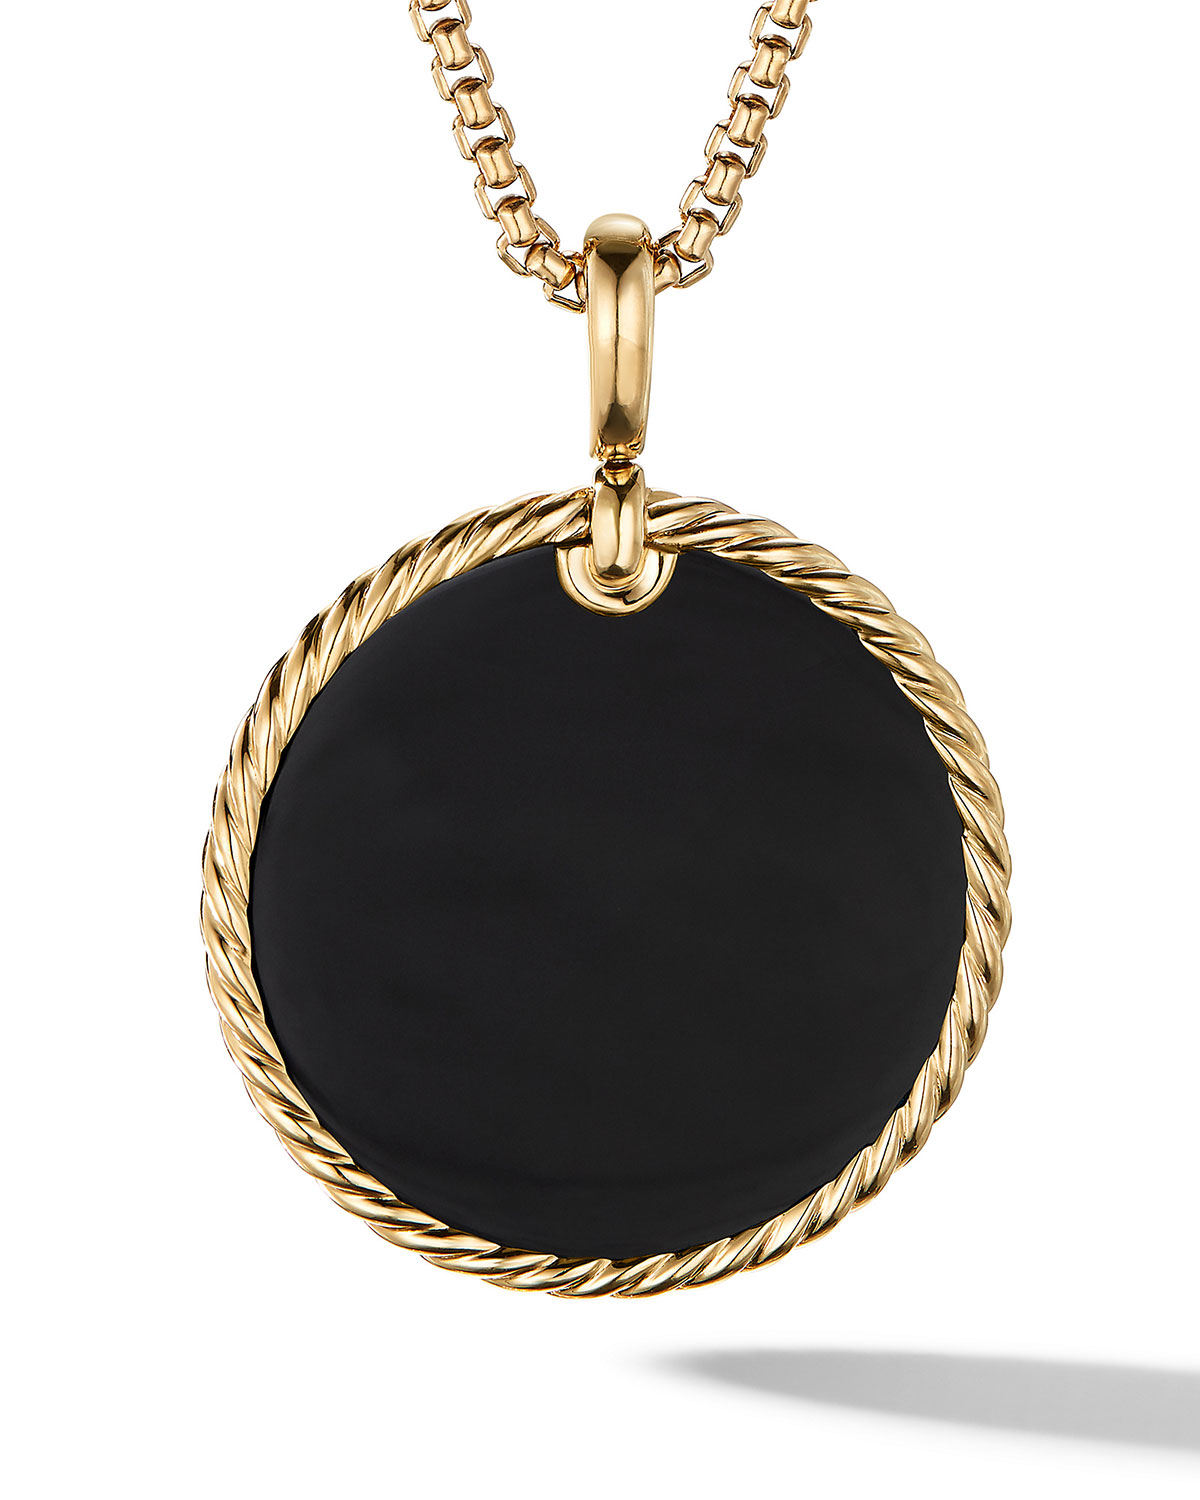 David Yurman Dy Elements Cable Disc Pendant In 18k Yellow Gold With Black Onyx & Mother-of-pearl